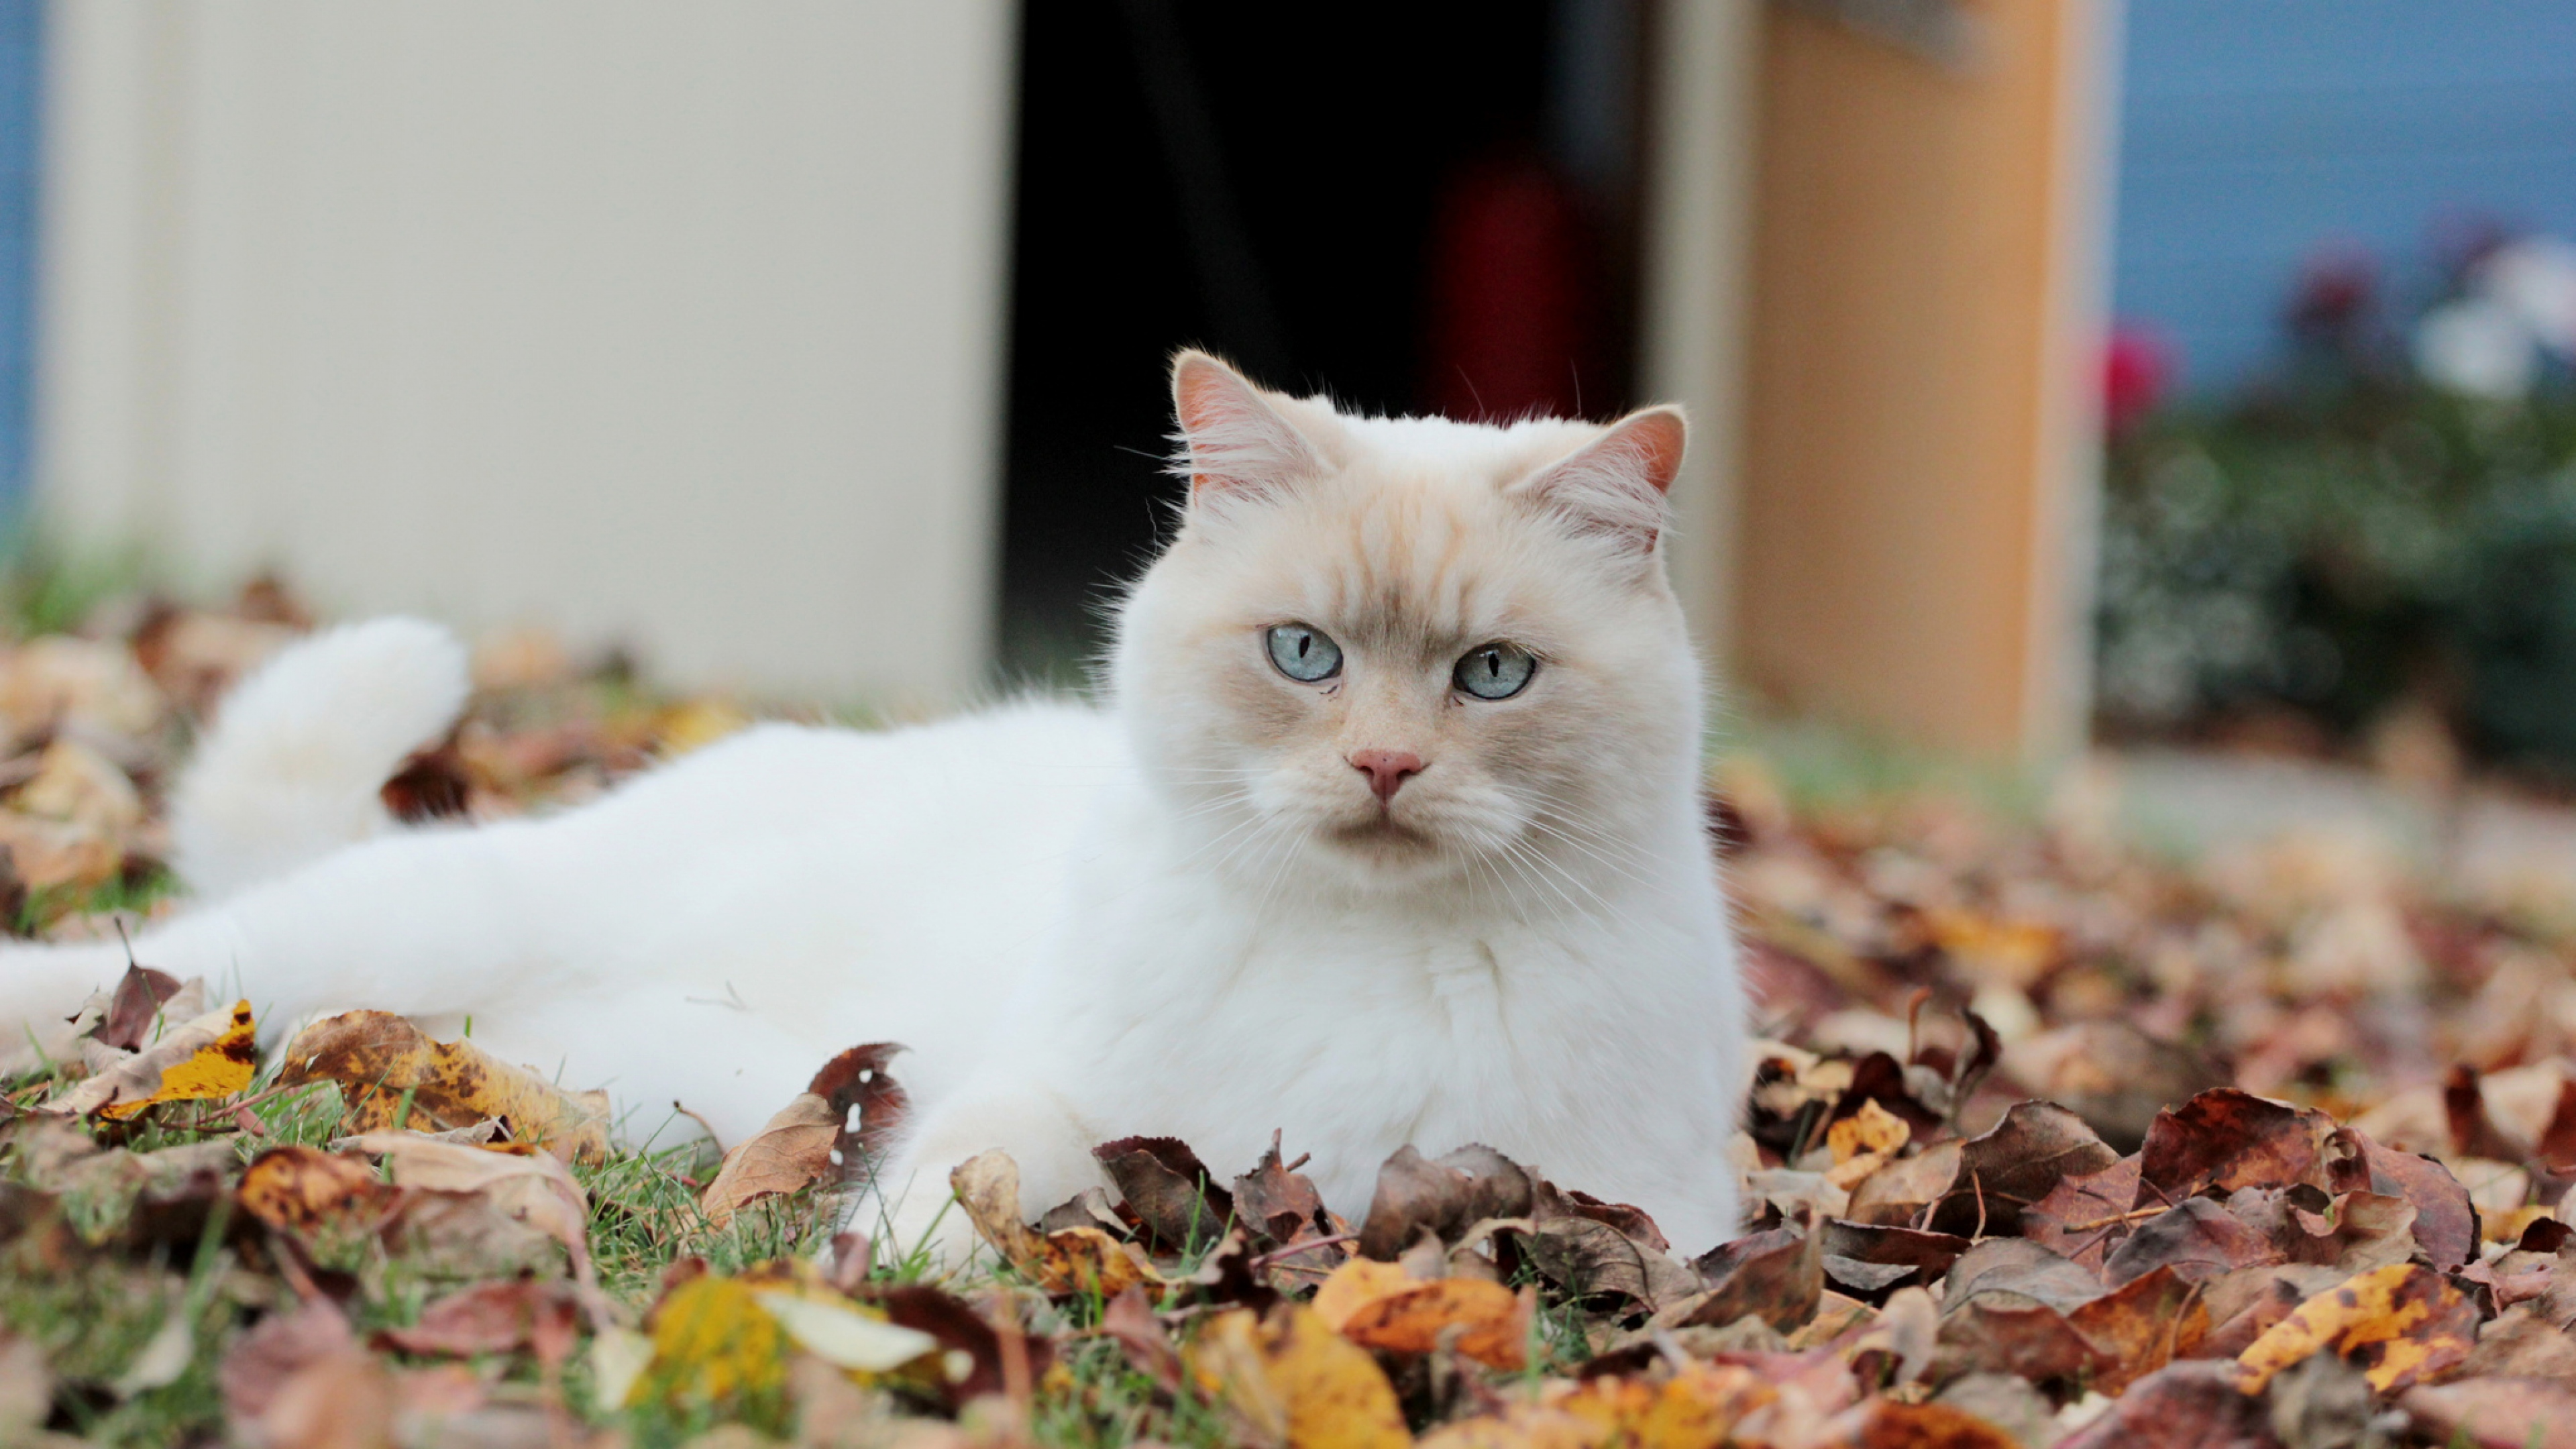 cat_leaves_autumn_dead_white_eyes_94000_3840x2160